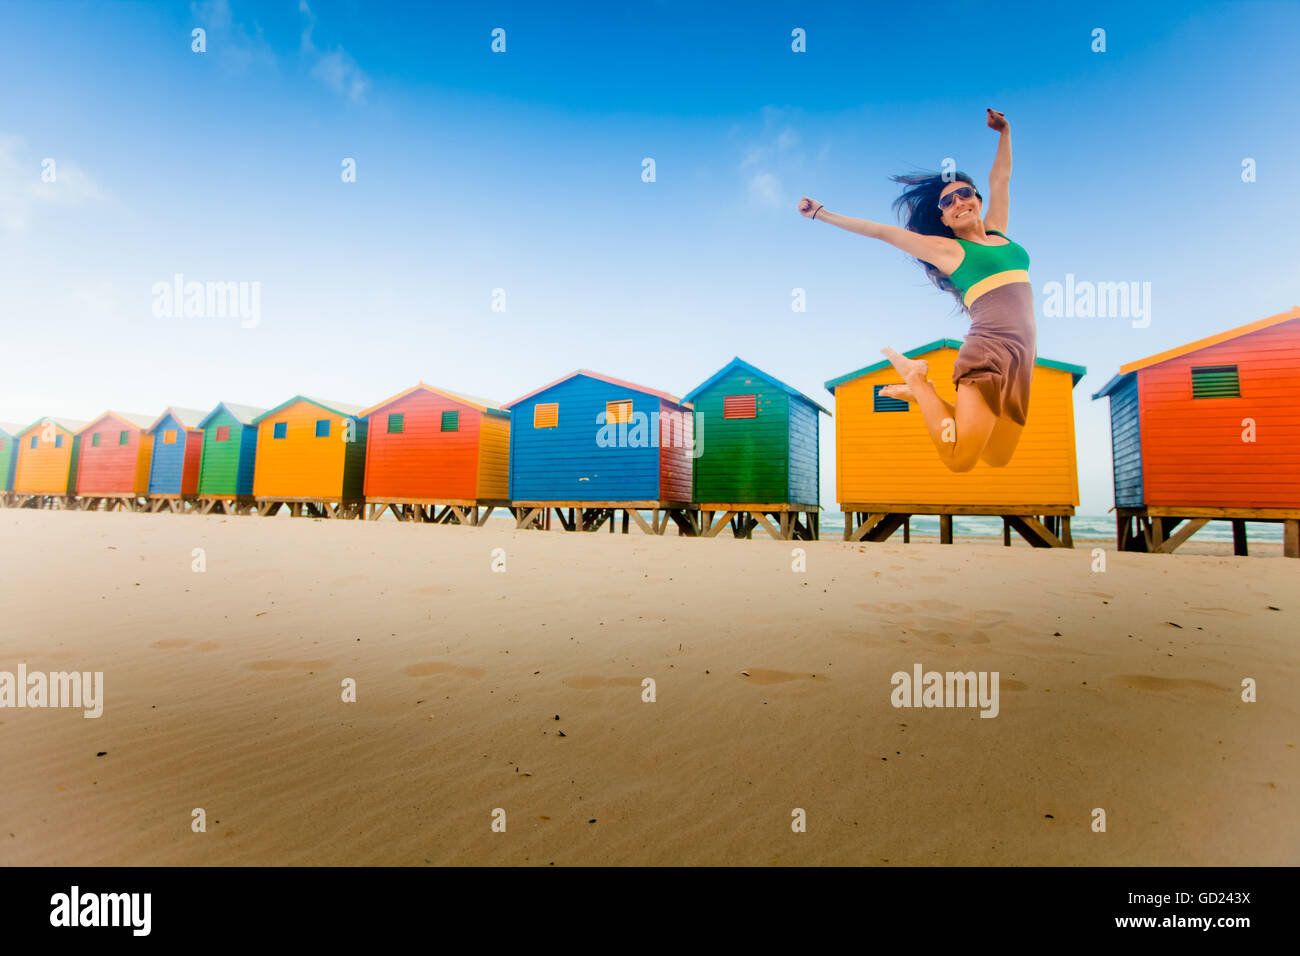 Laura Grier jumping in front of colorful beach huts, Muizenberg Beach, Cape Town, South Africa, Africa - Stock Image